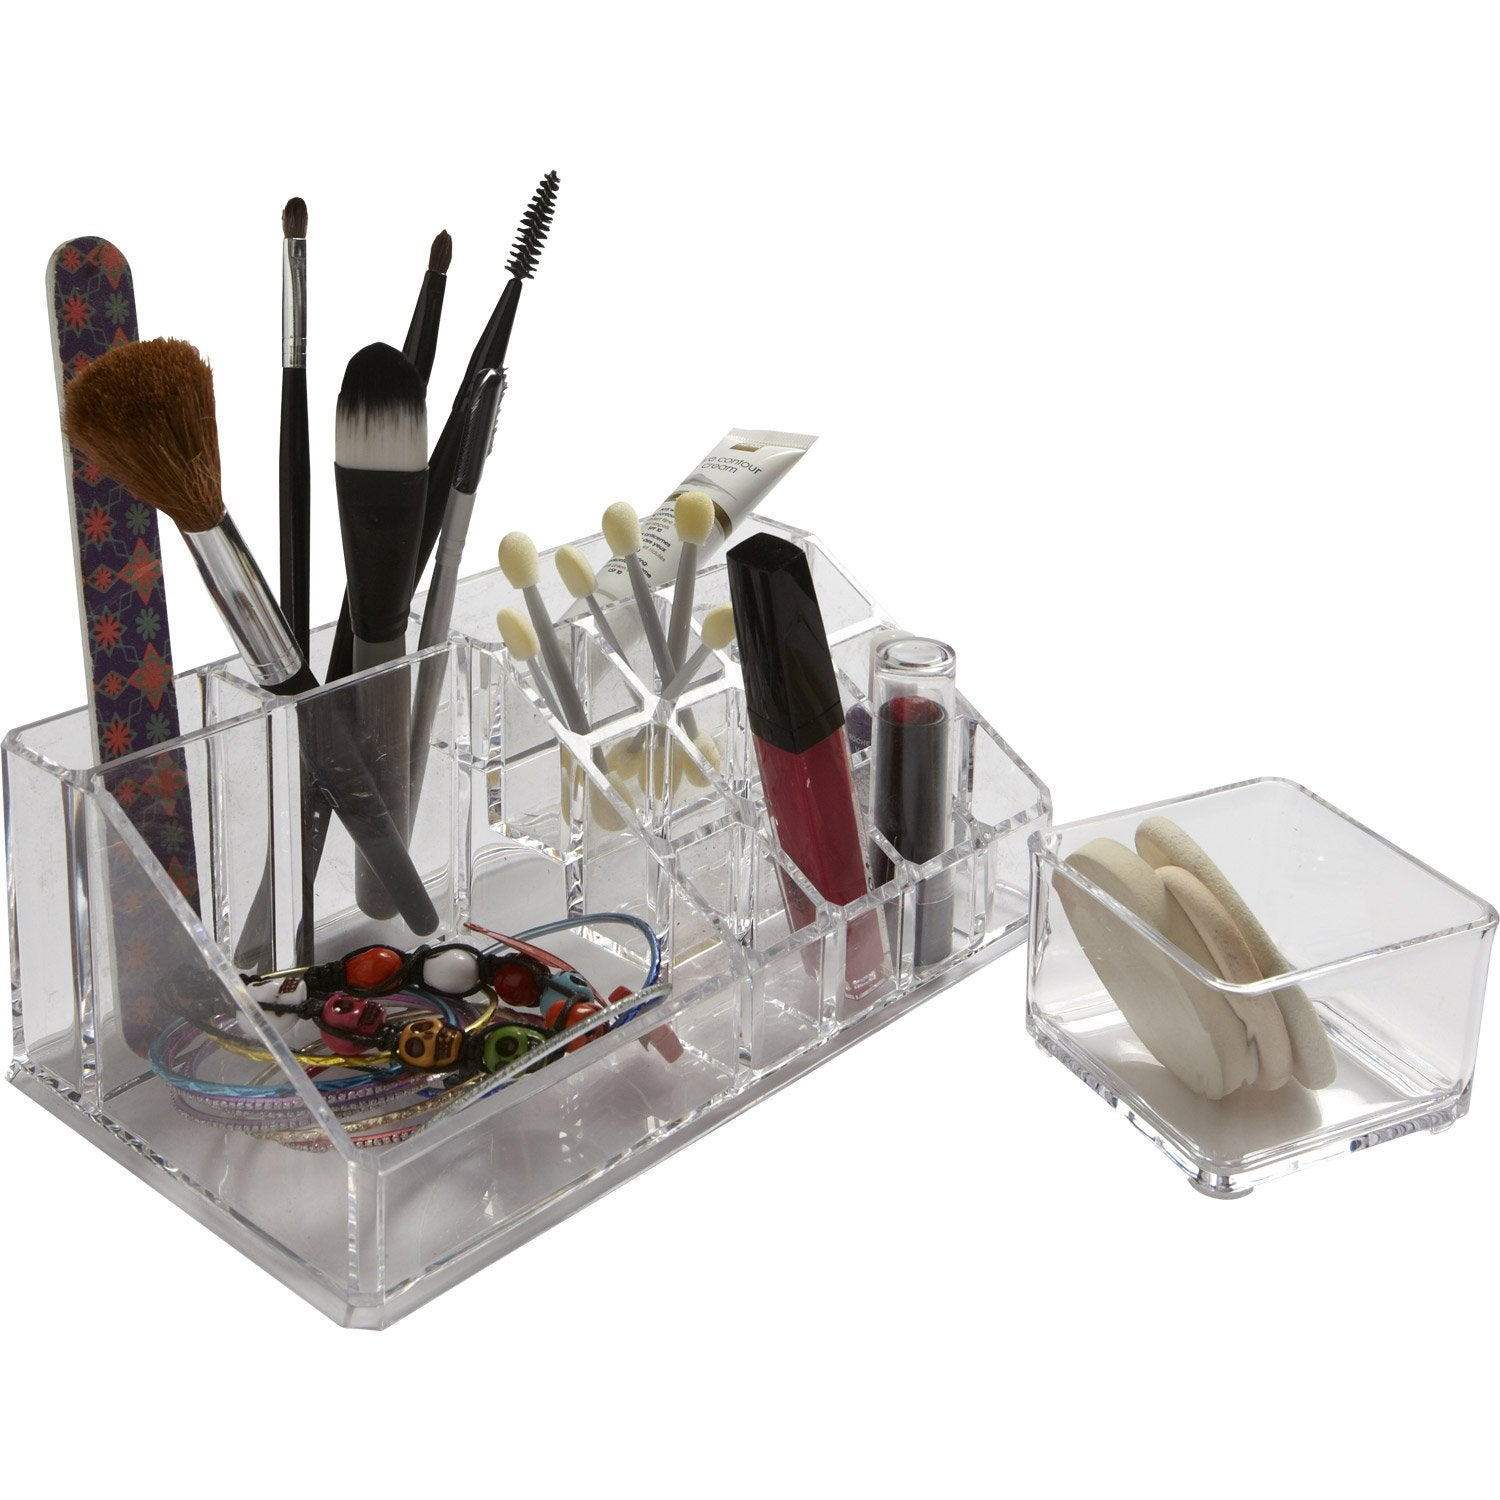 Organiseur En Plastique Transparent Beauty Leroy Merlin